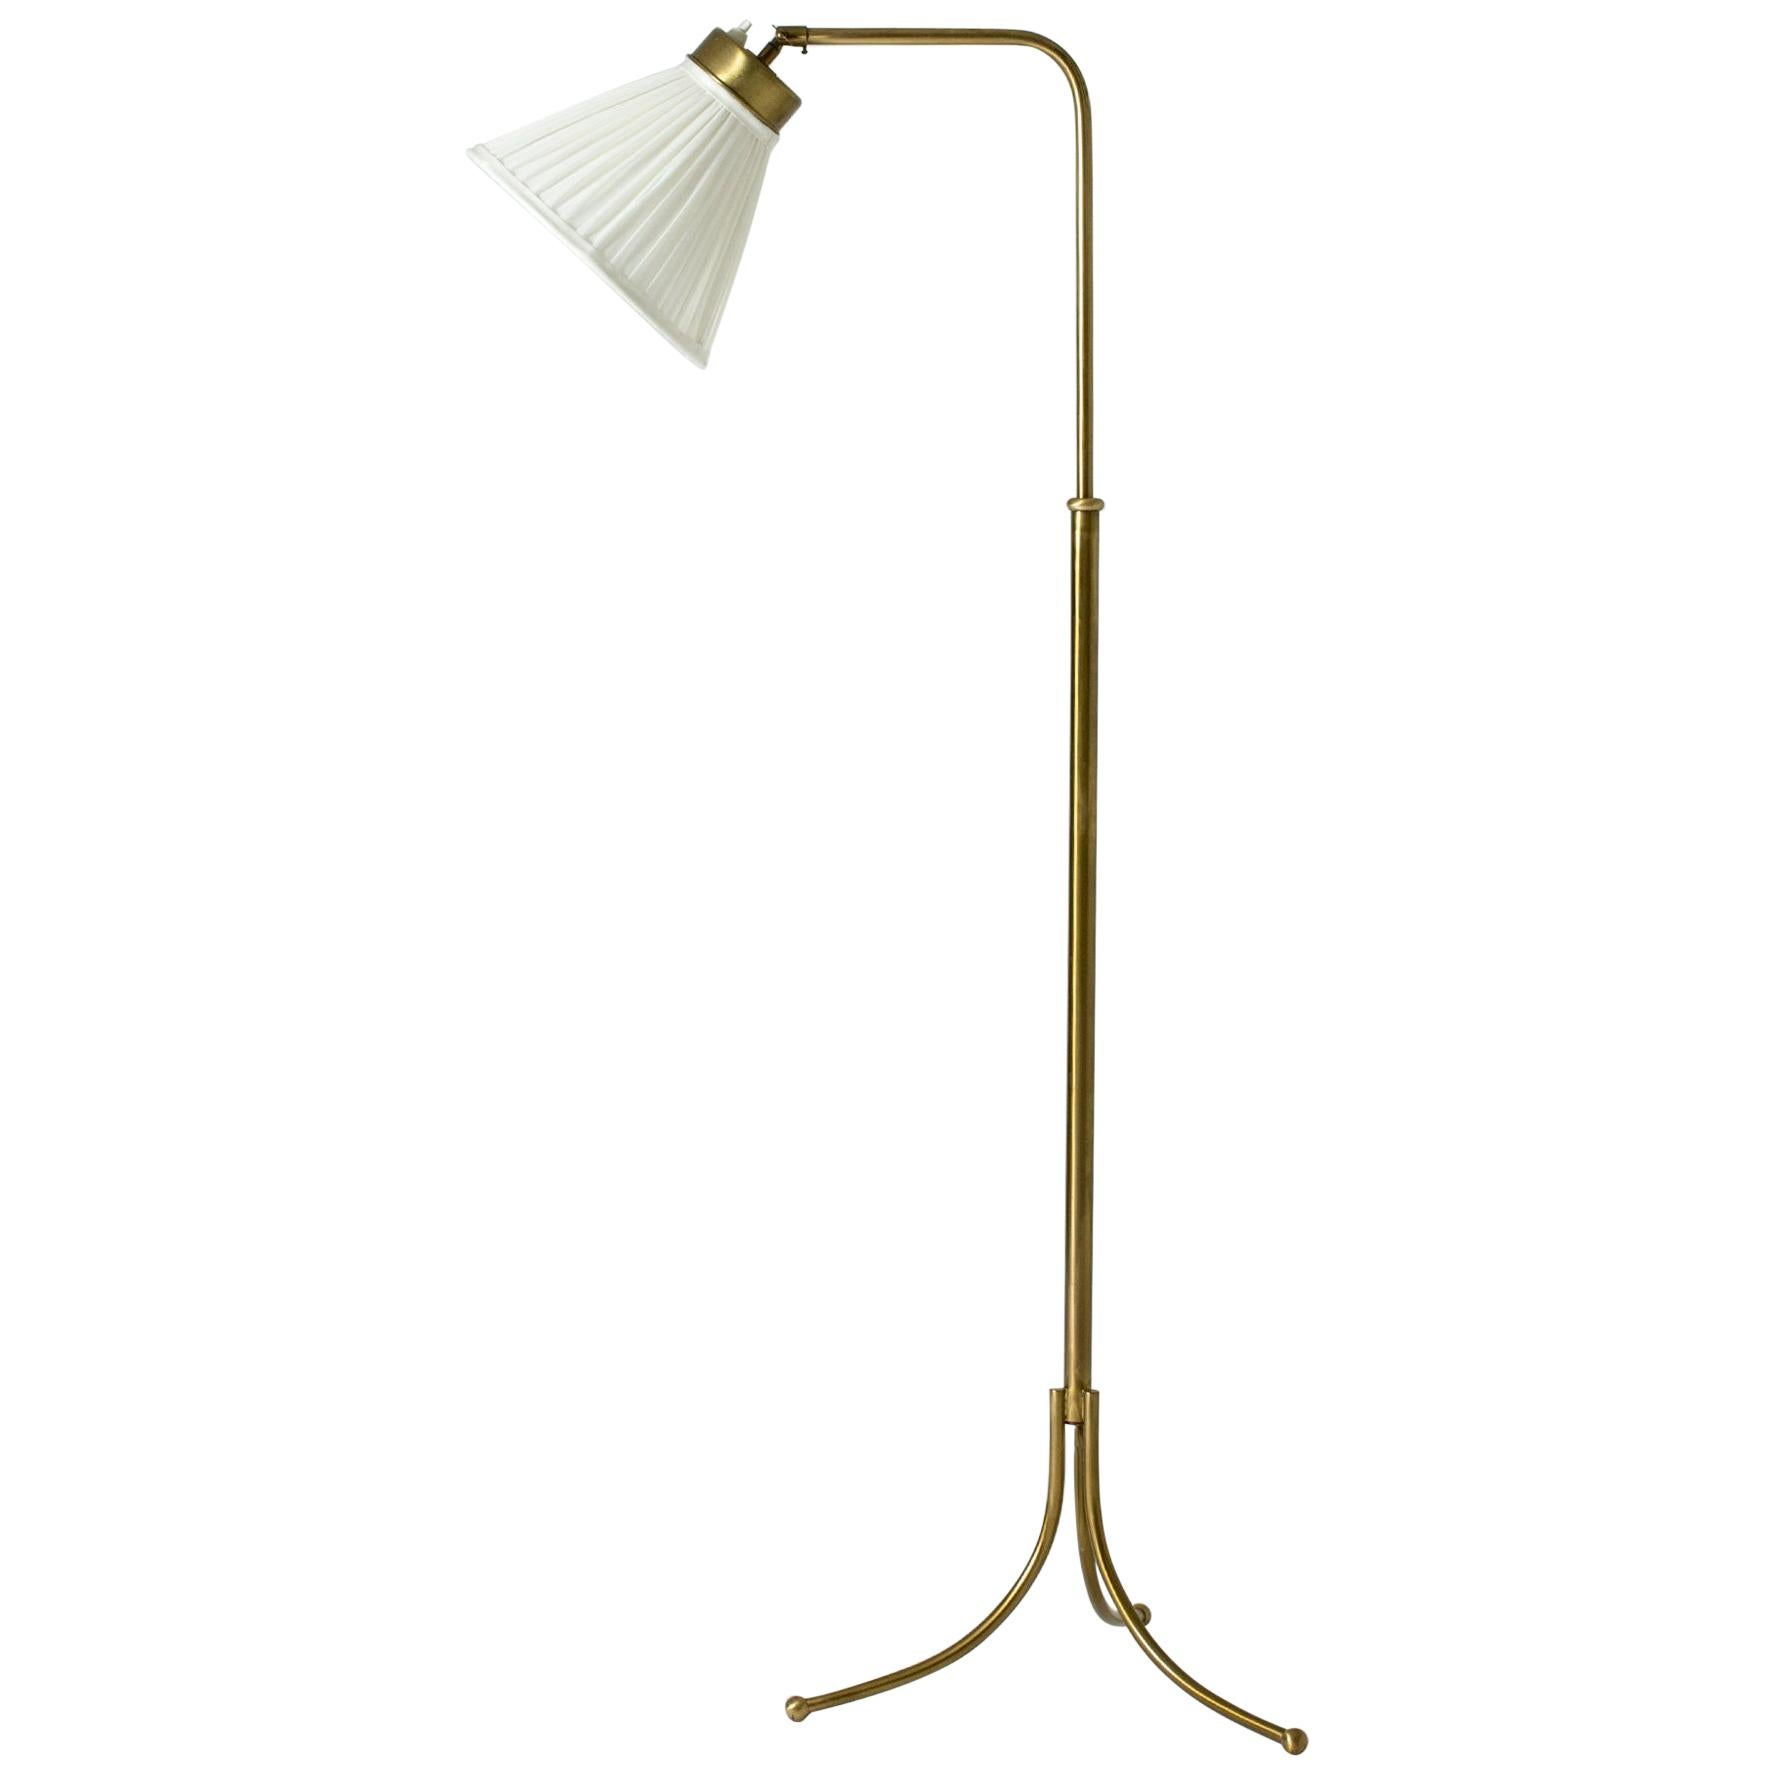 Brass Floor Lamp model #G1842 by Josef Frank for Svenskt Tenn, Sweden, 1950s